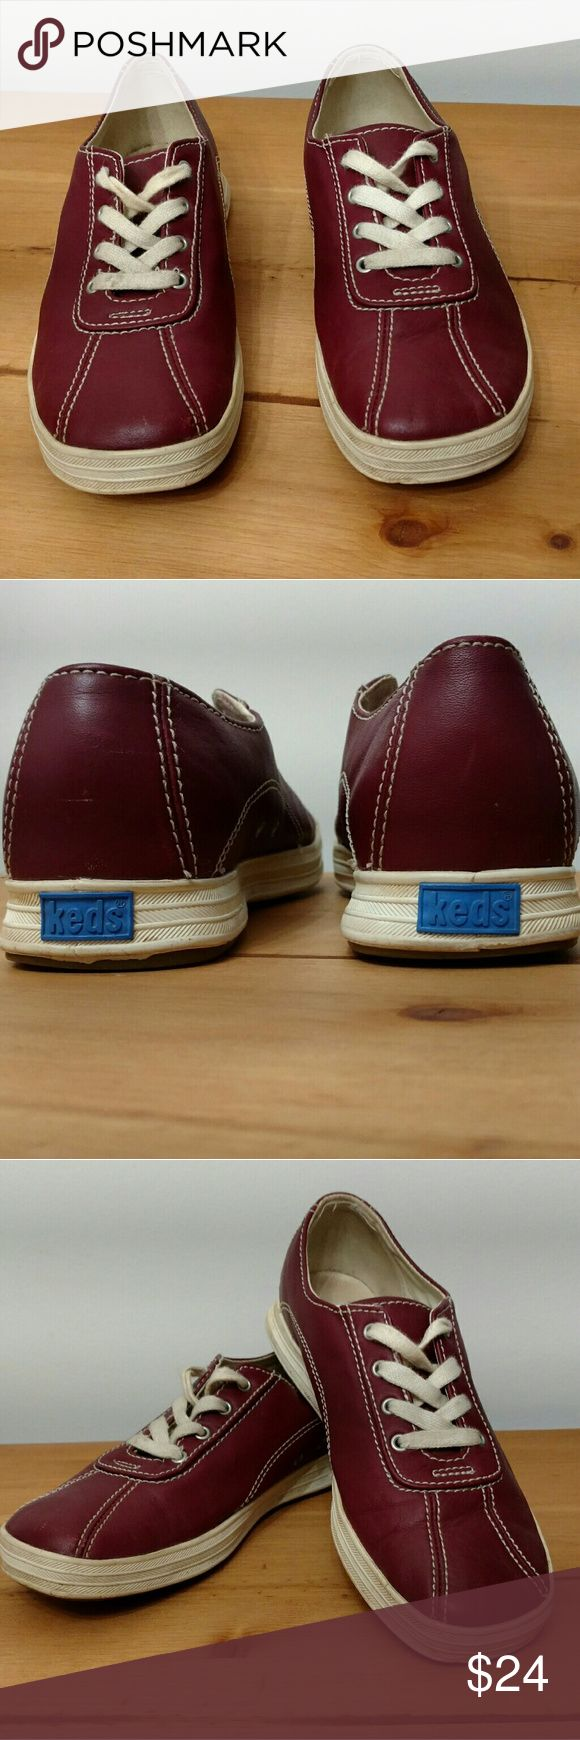 Maroon Leather Keds Originals. Size 7 Pre-loved genuine leather Keds in gorgeous maroon color. Stitching and leather in excellent condition, a few minor scuffs and laces on one shoe are starting to fray but overall in great shape. Keds Shoes